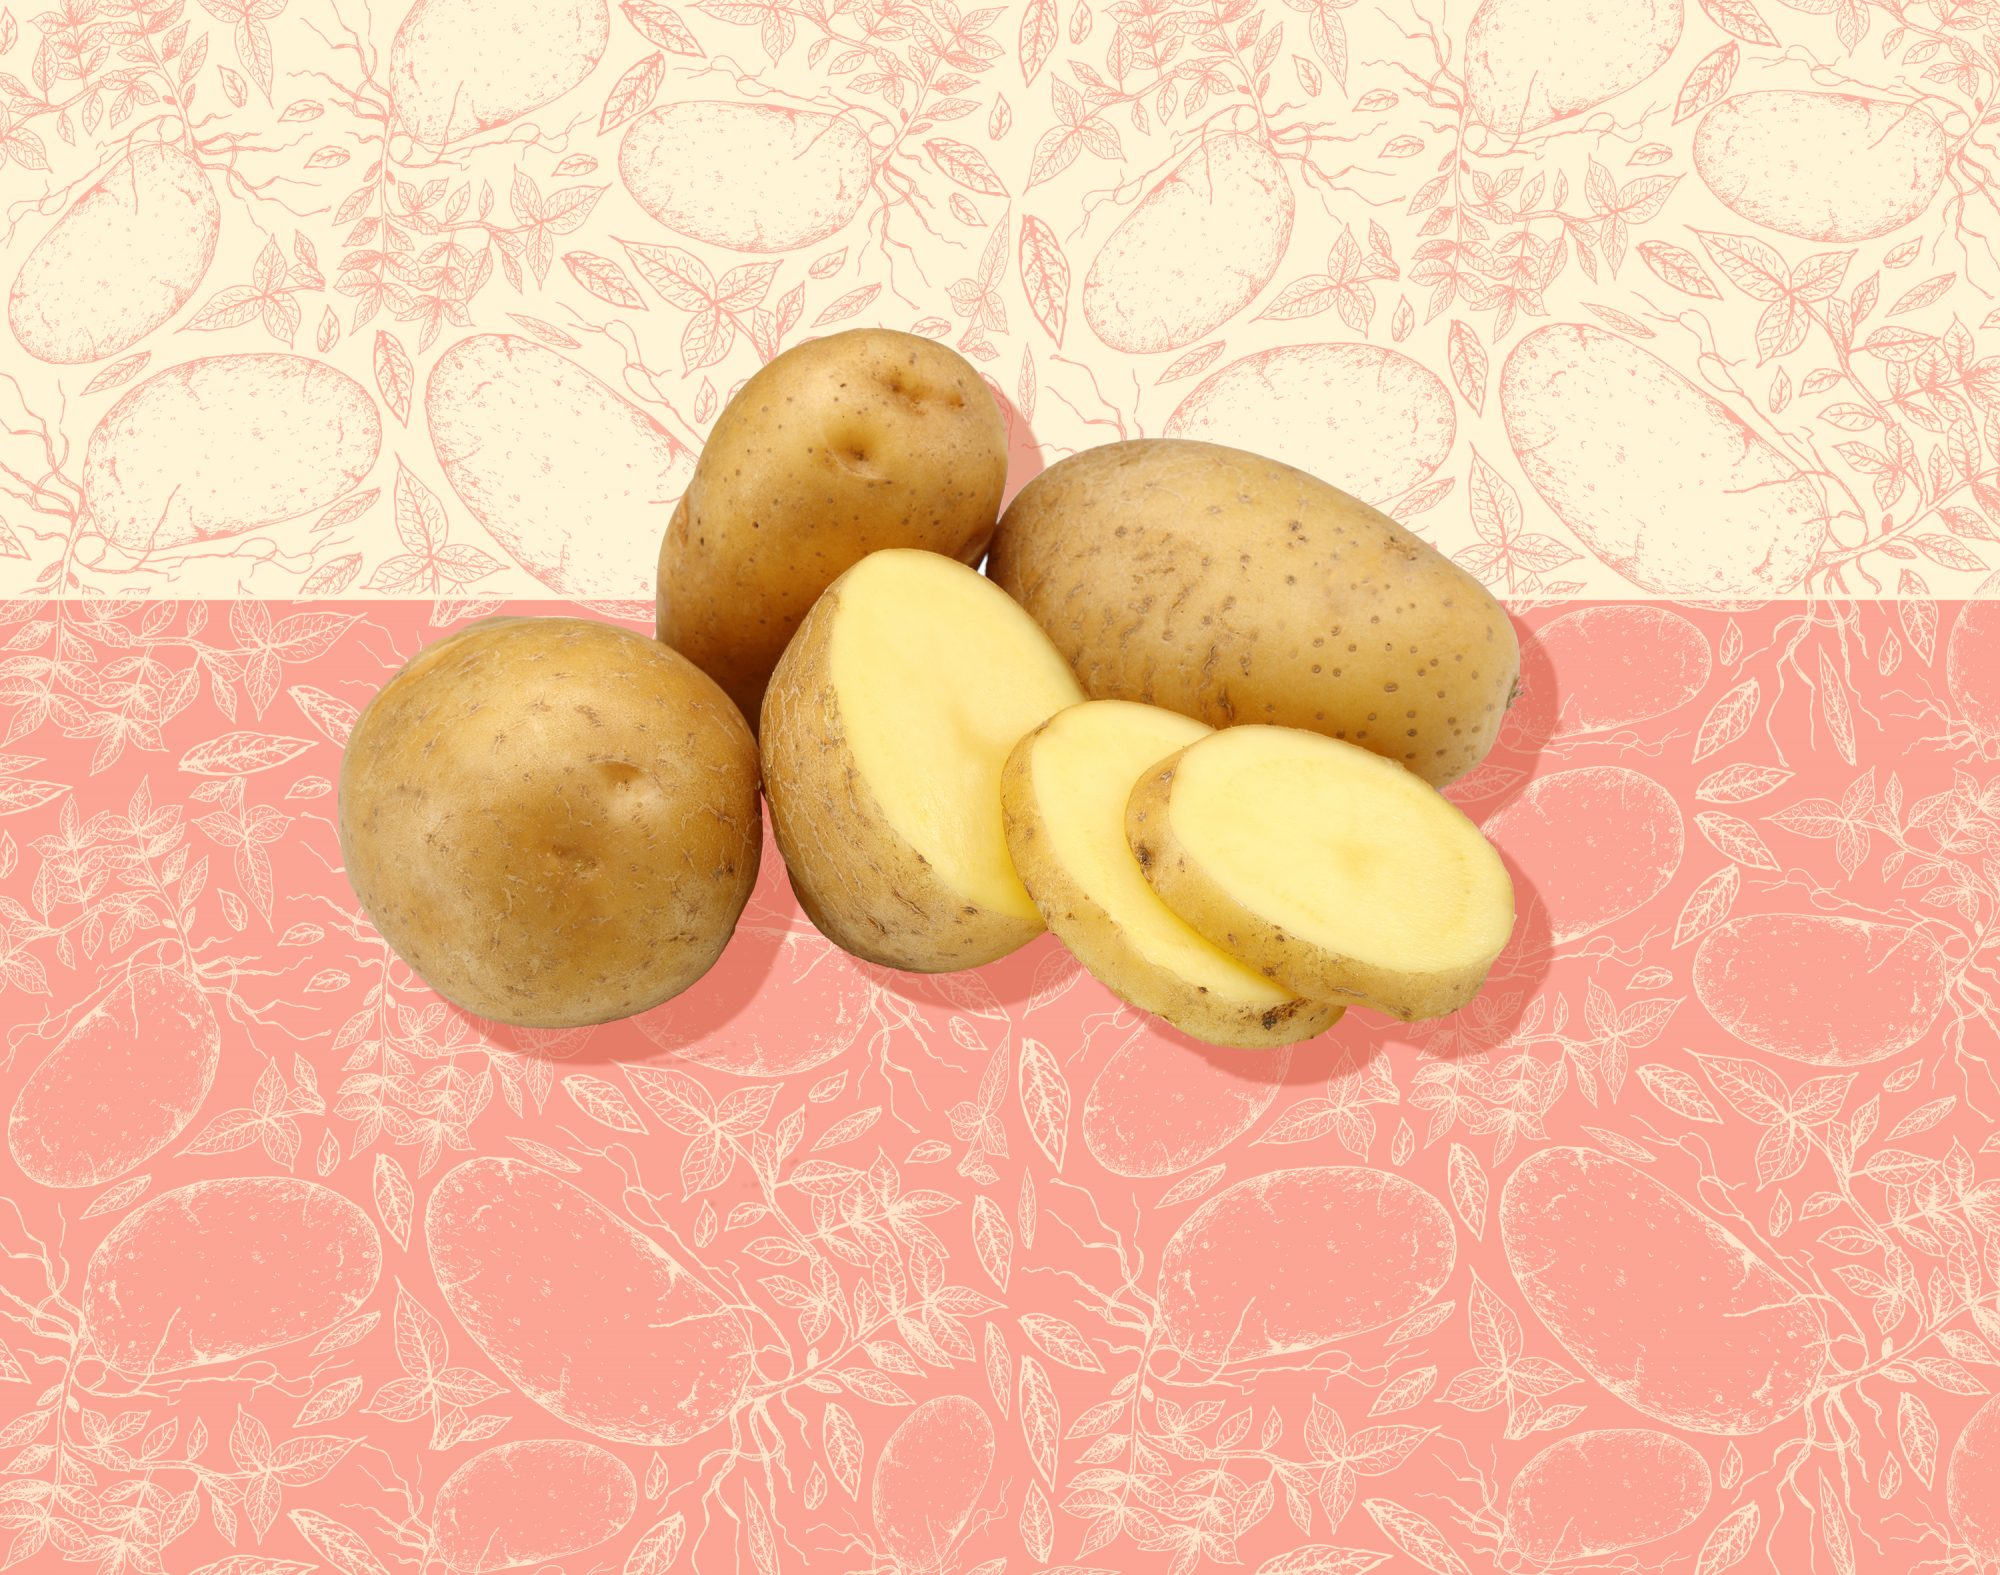 Are Potatoes Healthy? These Are The Health Benefits of